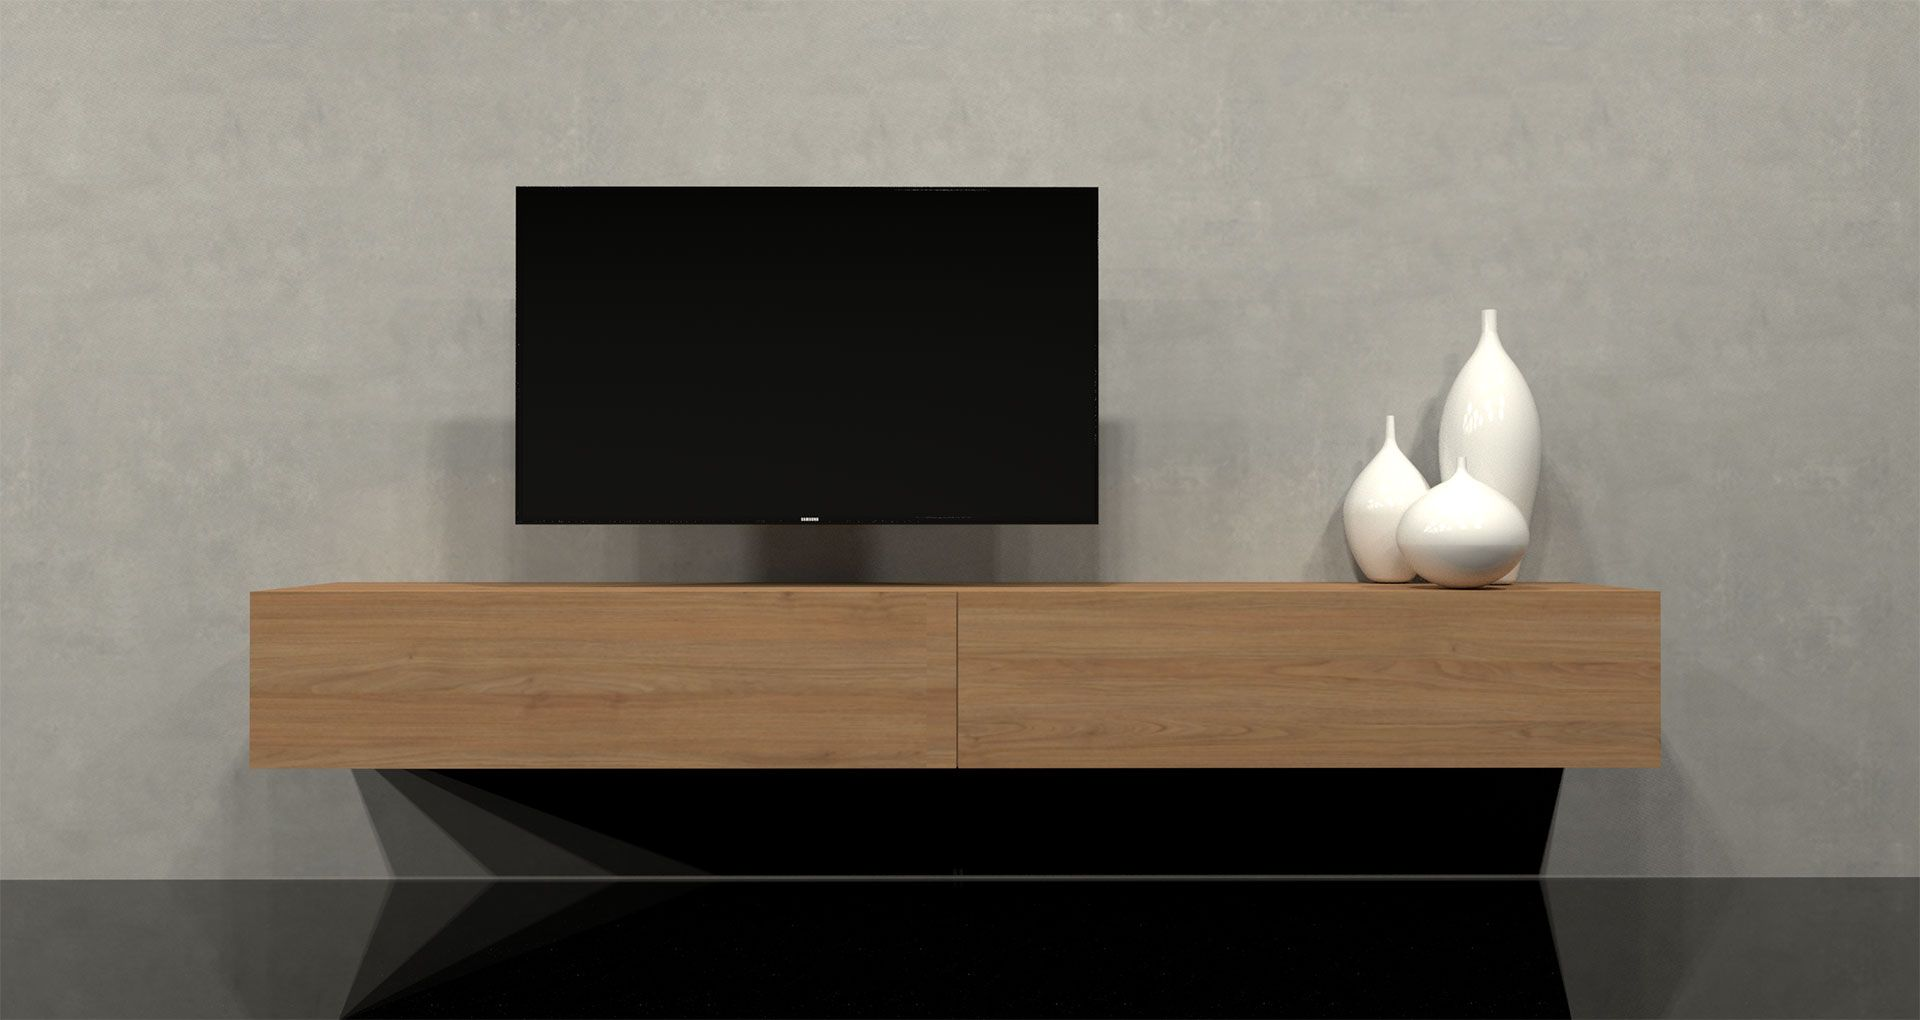 Pin By Francisco Torrico On Muebles Wall Mounted Tv Unit Tv